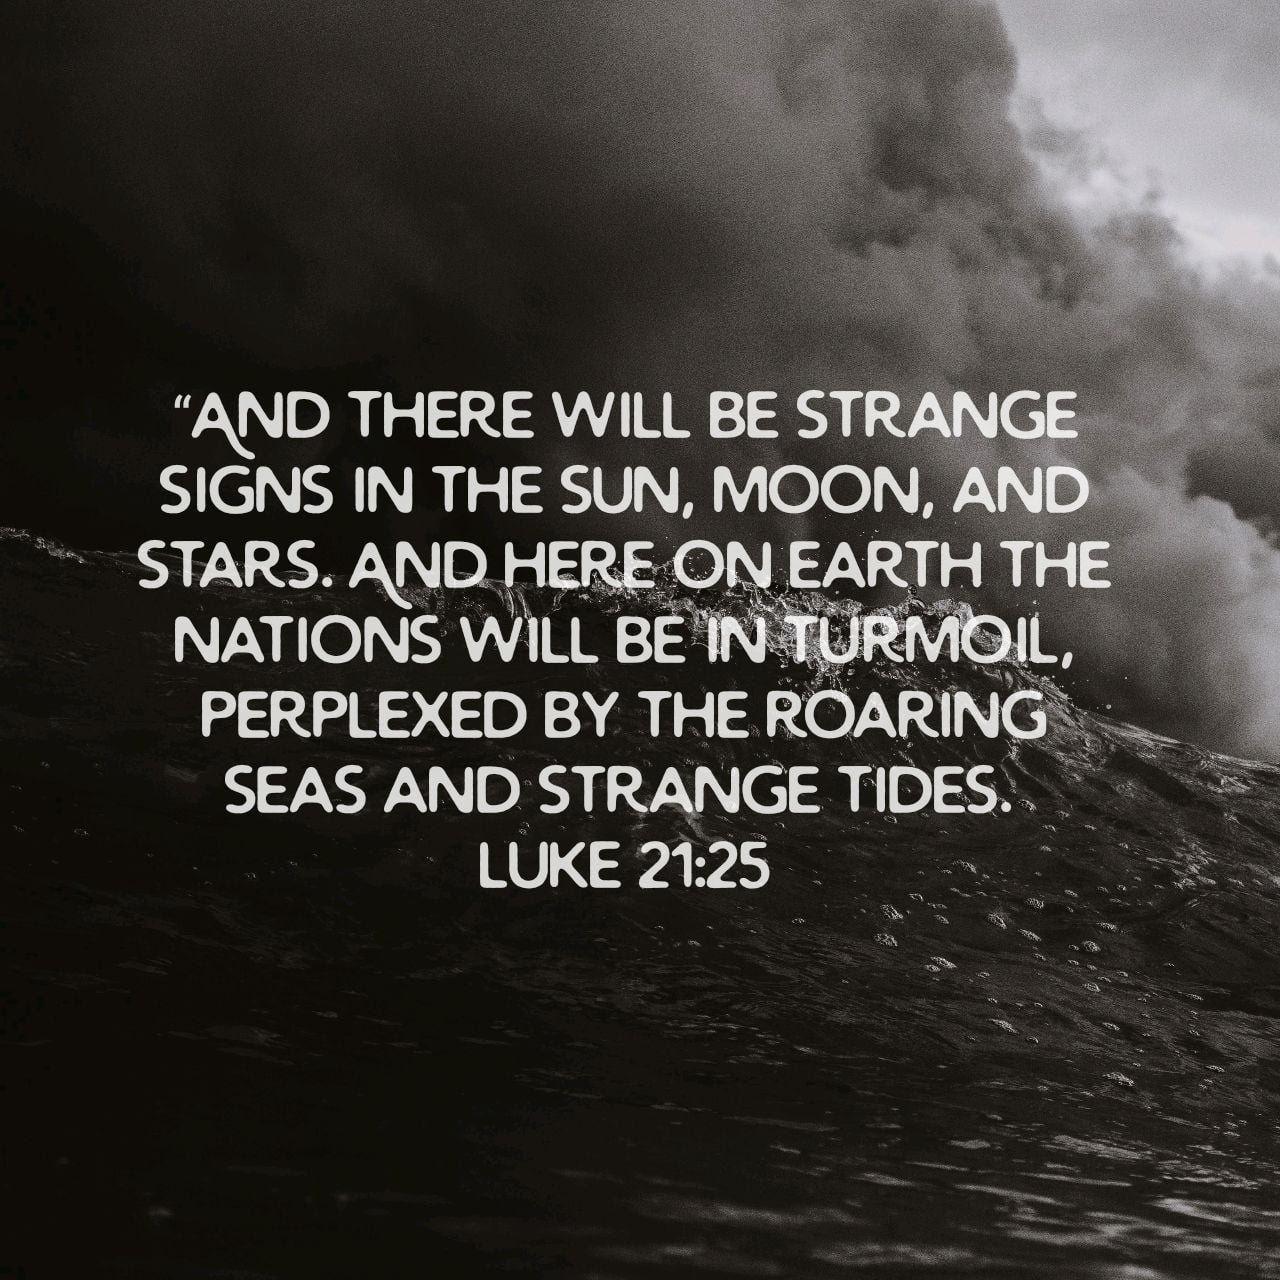 """And there will be strange signs in the sun, moon, and stars. And here on earth the nations will be in turmoil, perplexed by the roaring seas and strange tides.